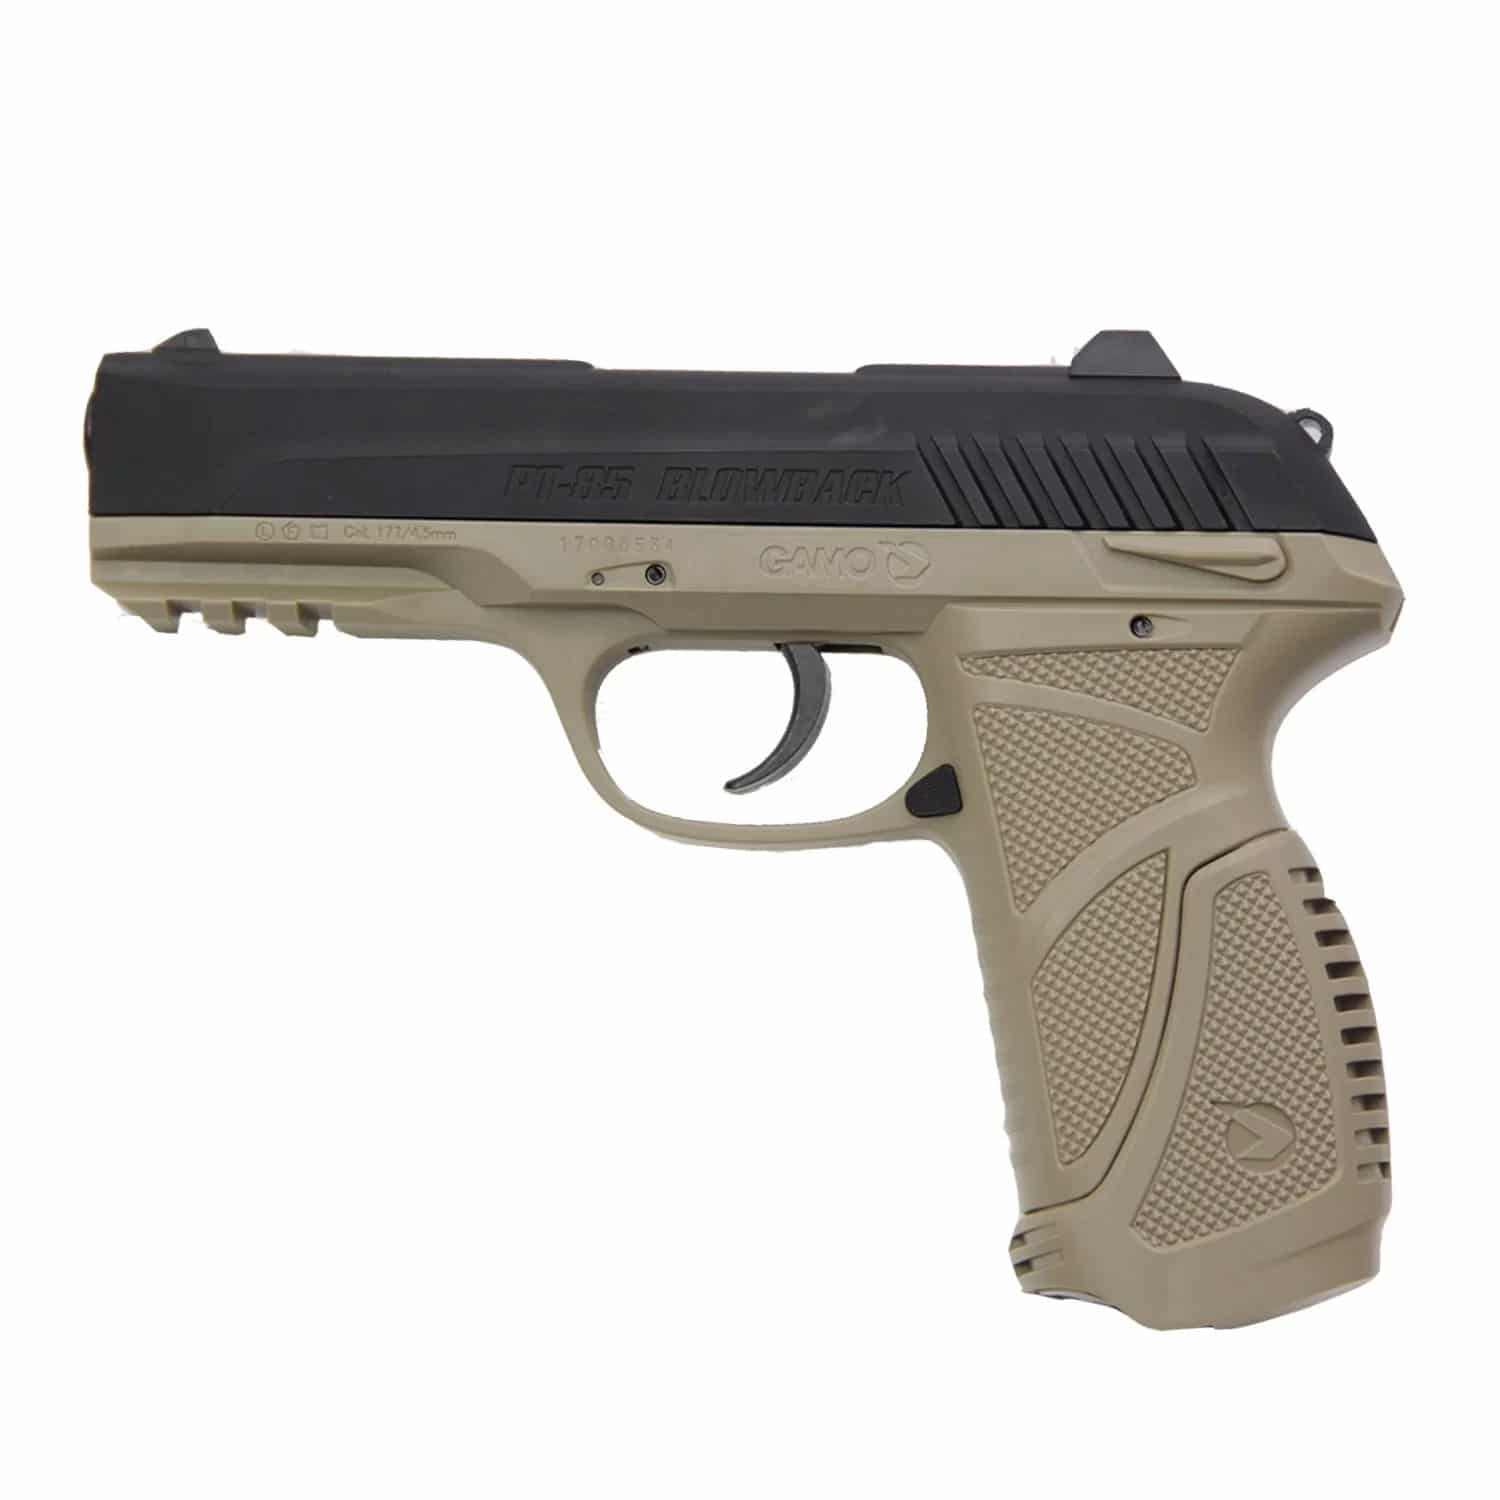 Pistola Airgun Pressão Gamo PT-85 Desert Blowback Co2 4,5mm